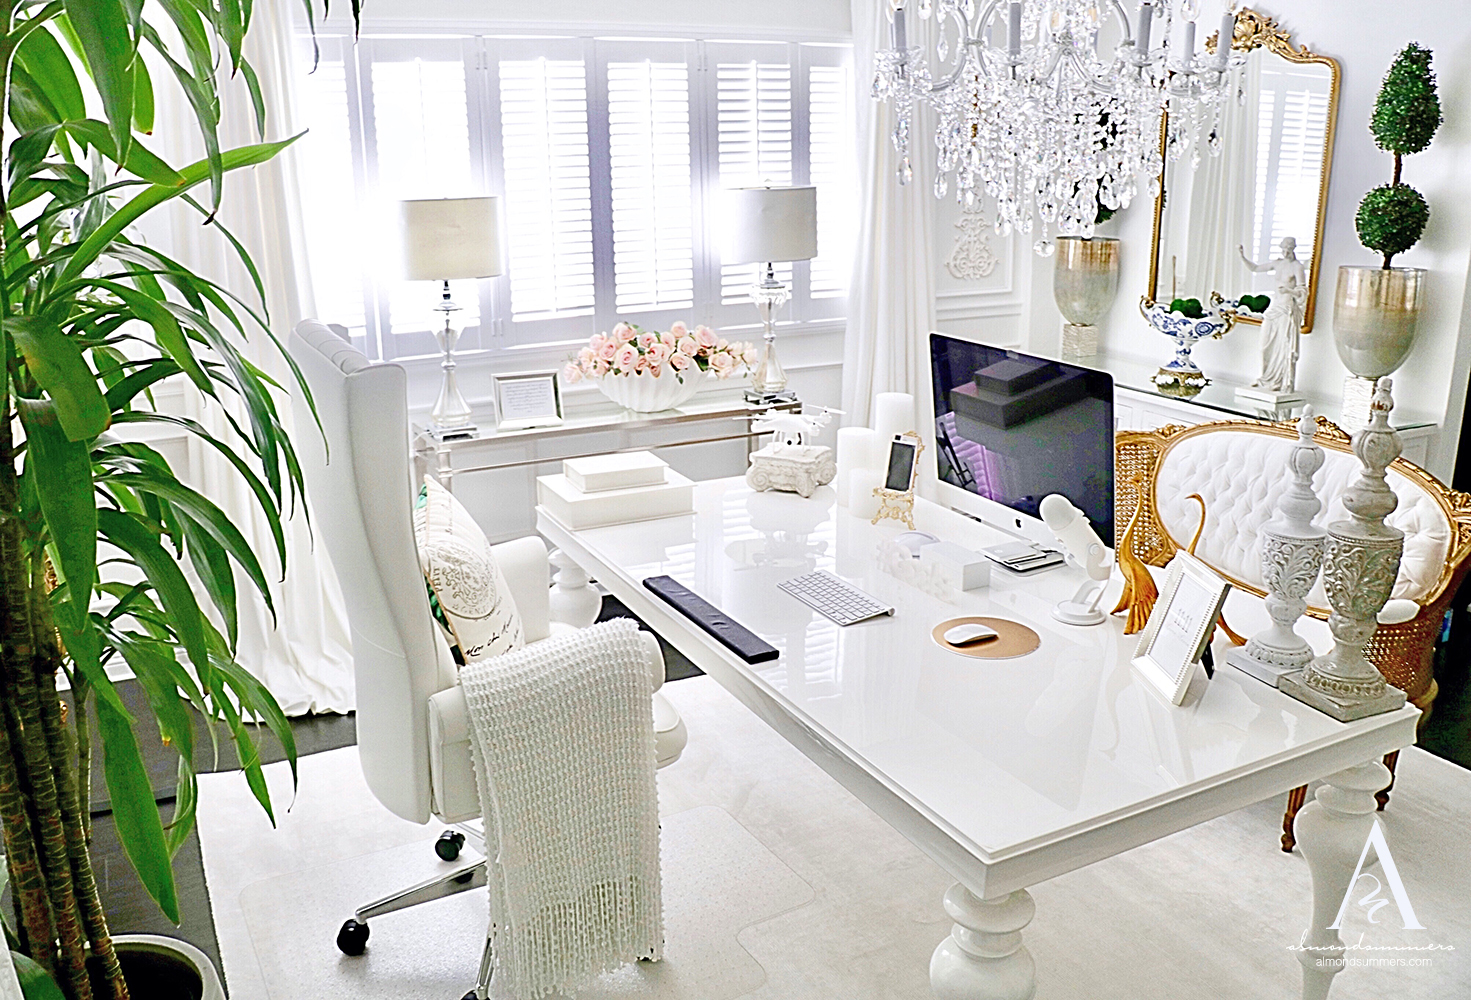 French Office Decor Ideas |Almond Summers Designs | Home Office | Office decor inspiration